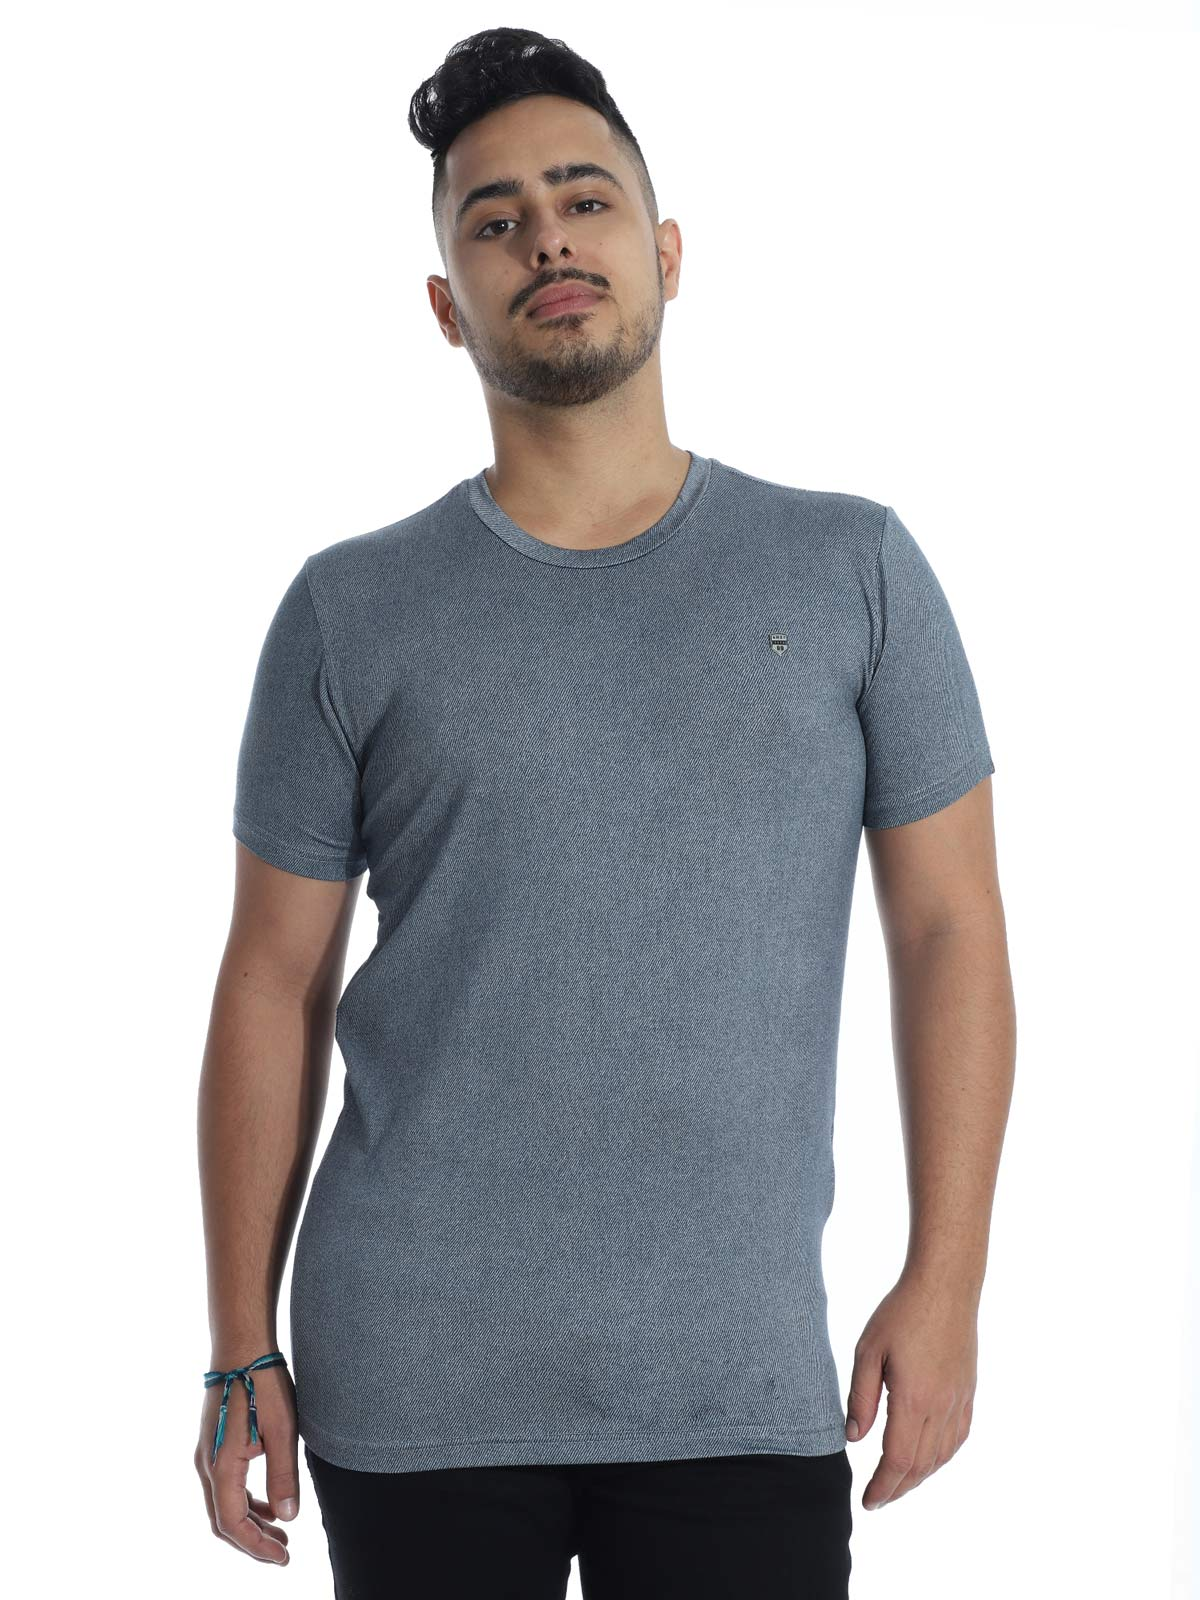 Camiseta Anistia Visco Slim Fit Jeans